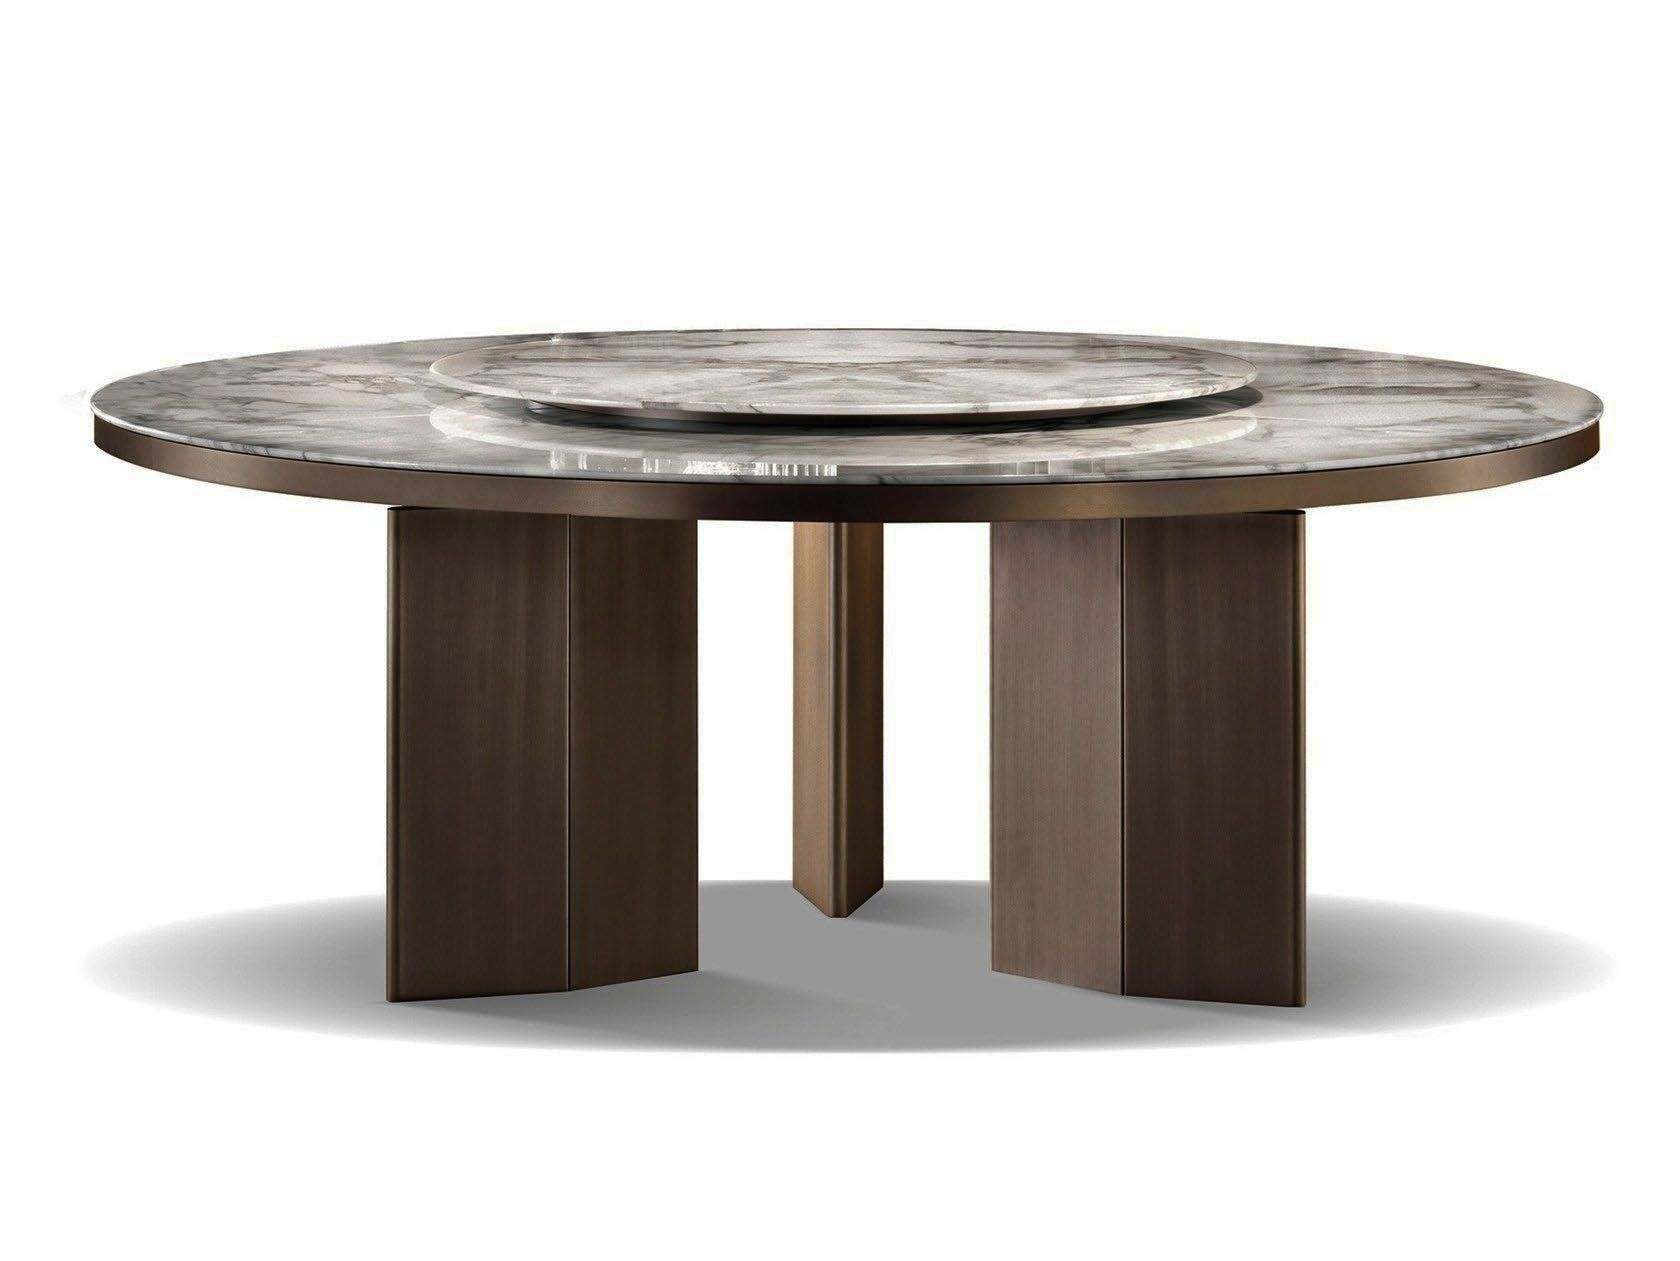 Amazing Dining Room Tables Houzz Only On Smarthomefi Com Dining Table Marble Marble Dining Furniture Dining Table [ 1261 x 1680 Pixel ]